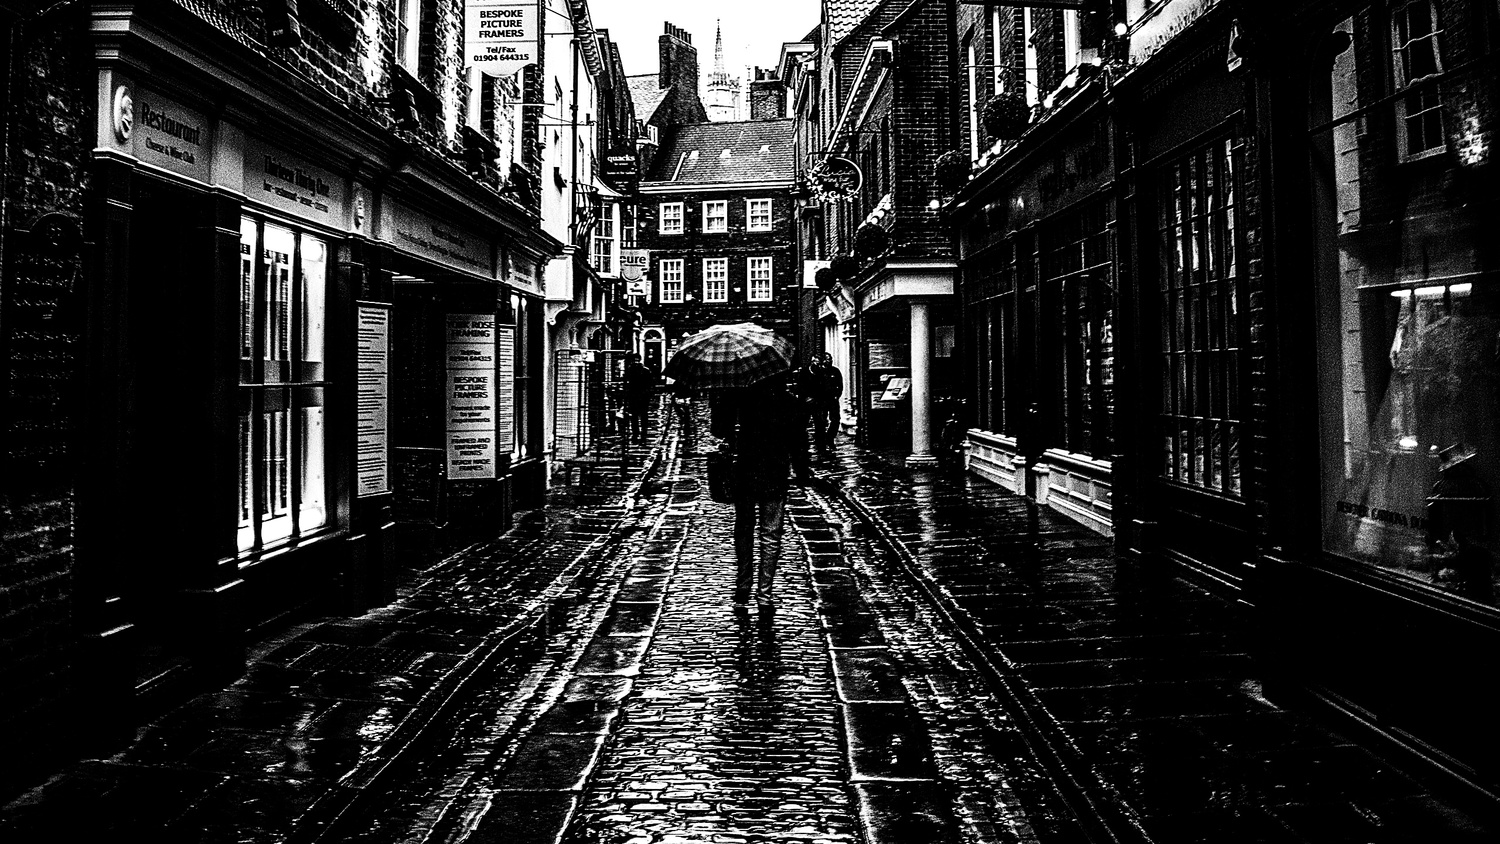 Rainy days in York by Shawn Anderson